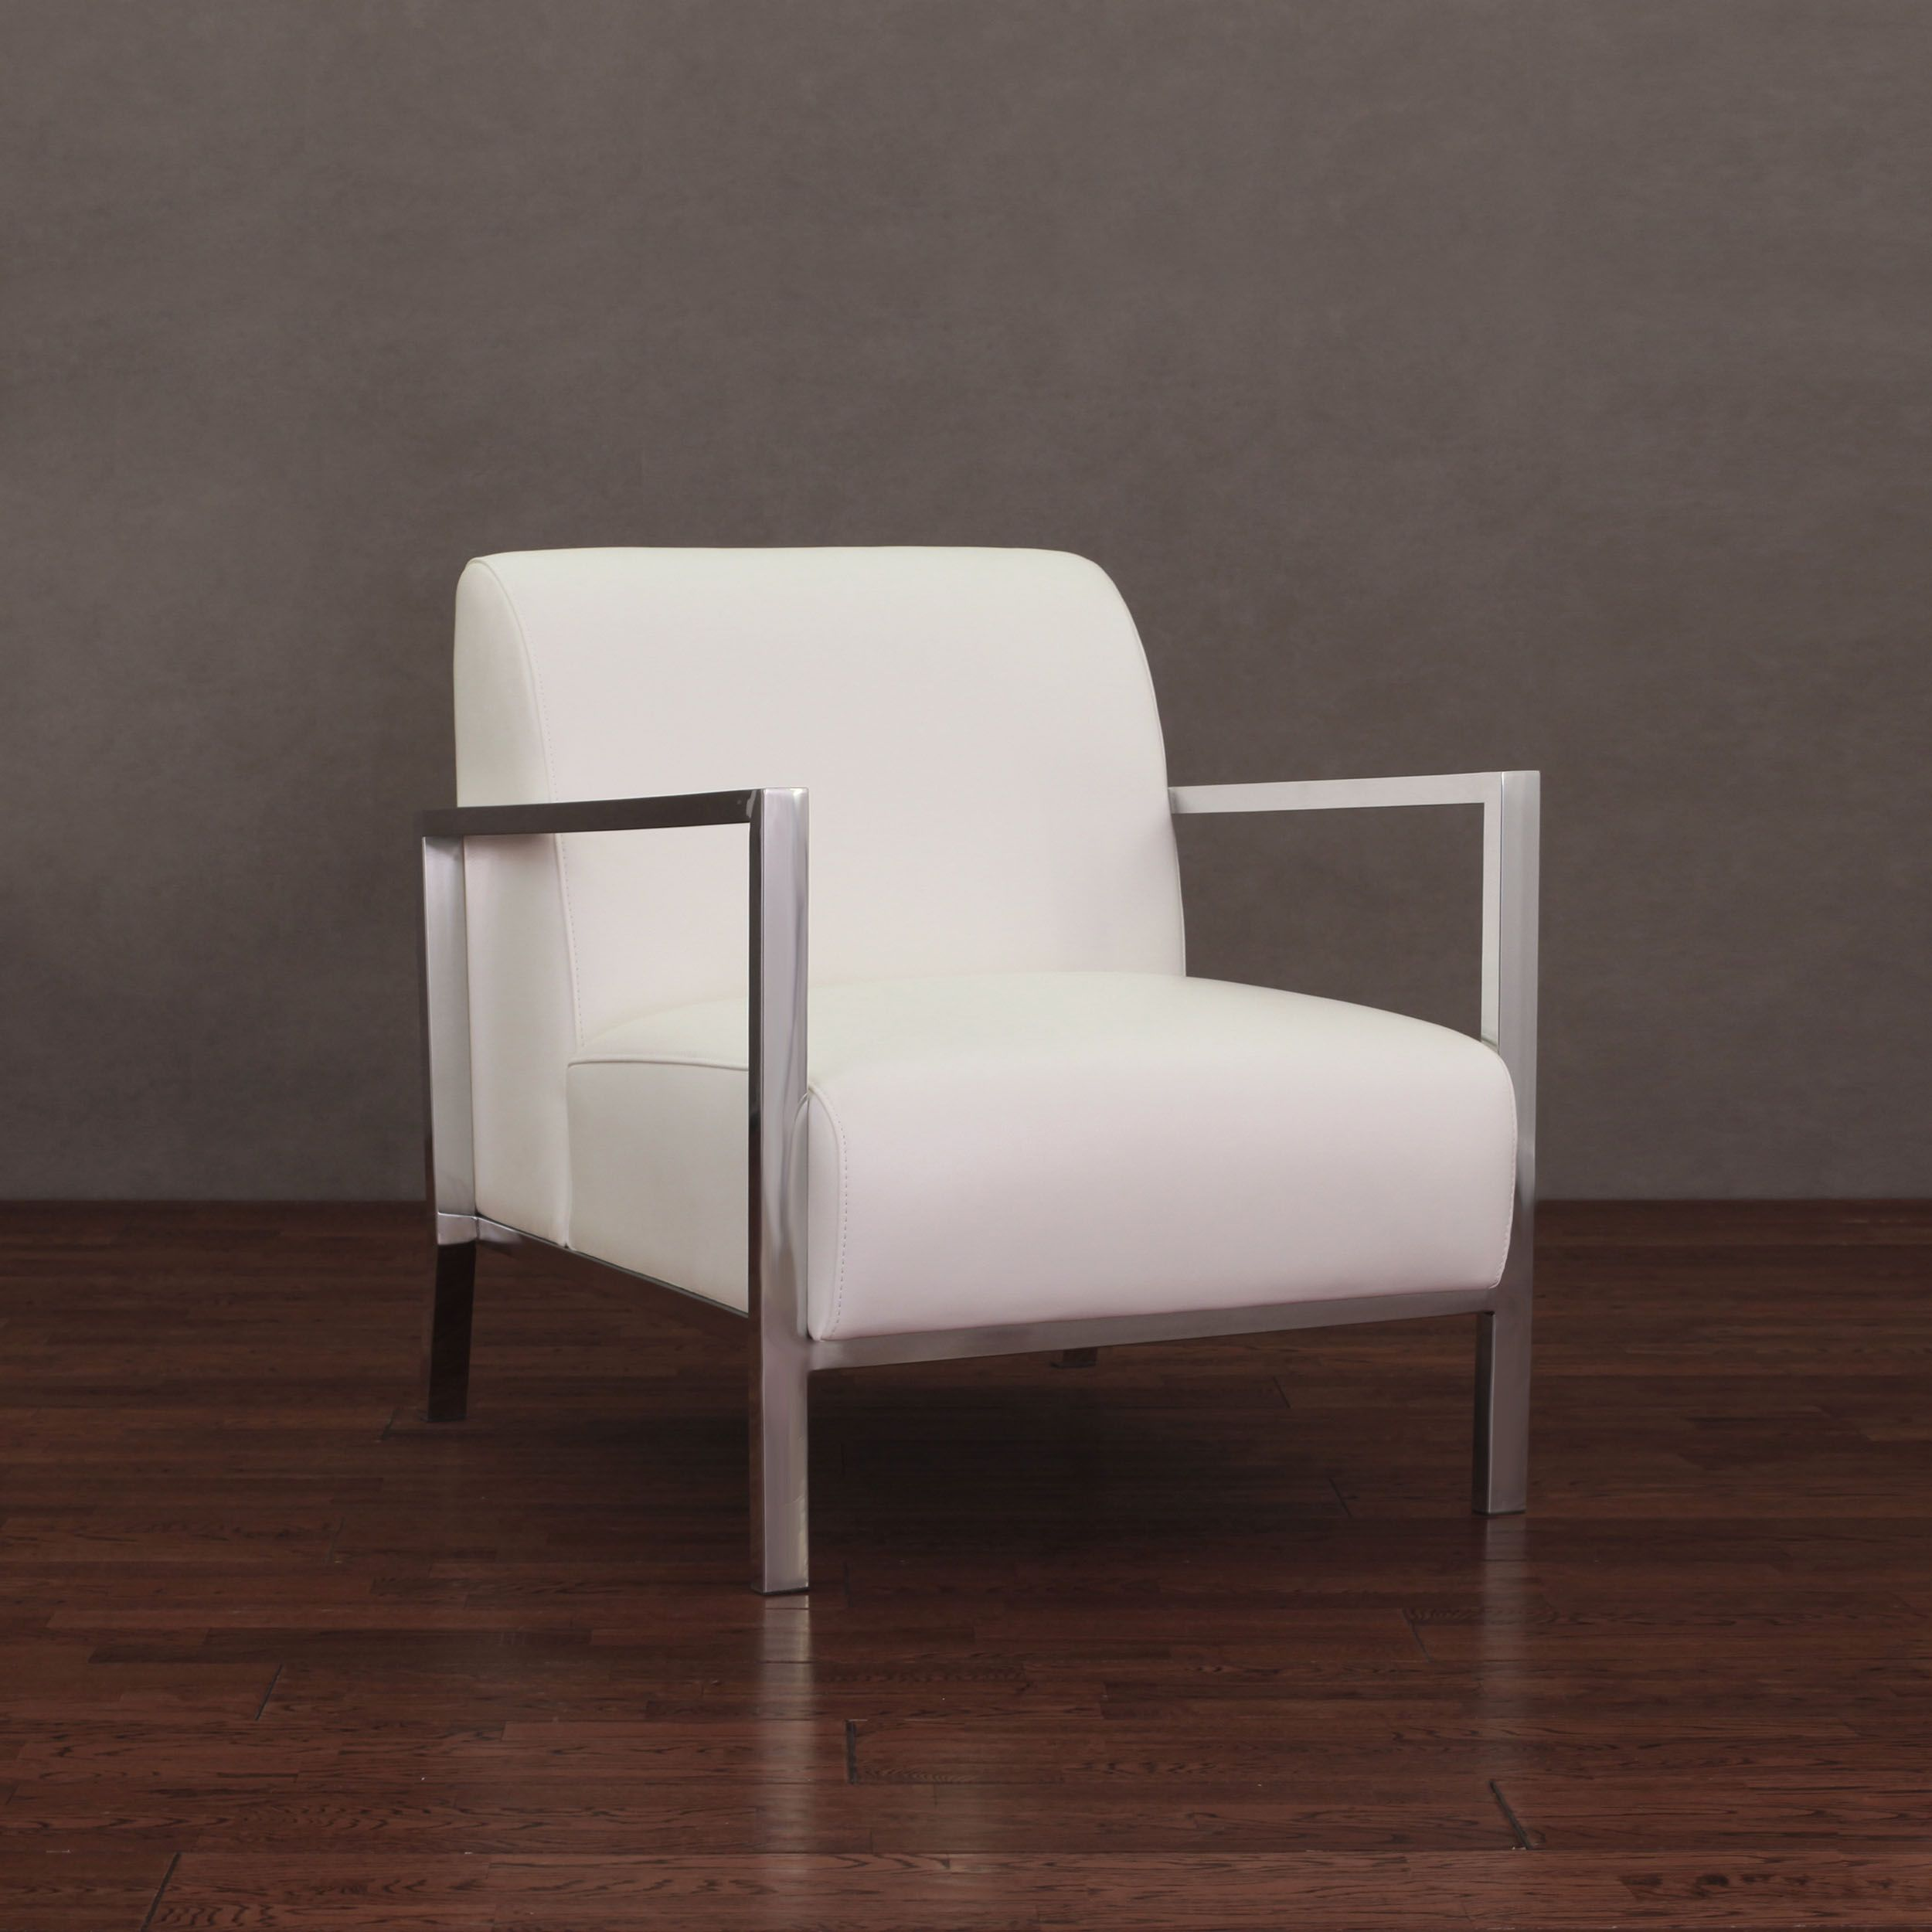 Modena Modern White Leather Accent Chair Ivory Cream Chrome